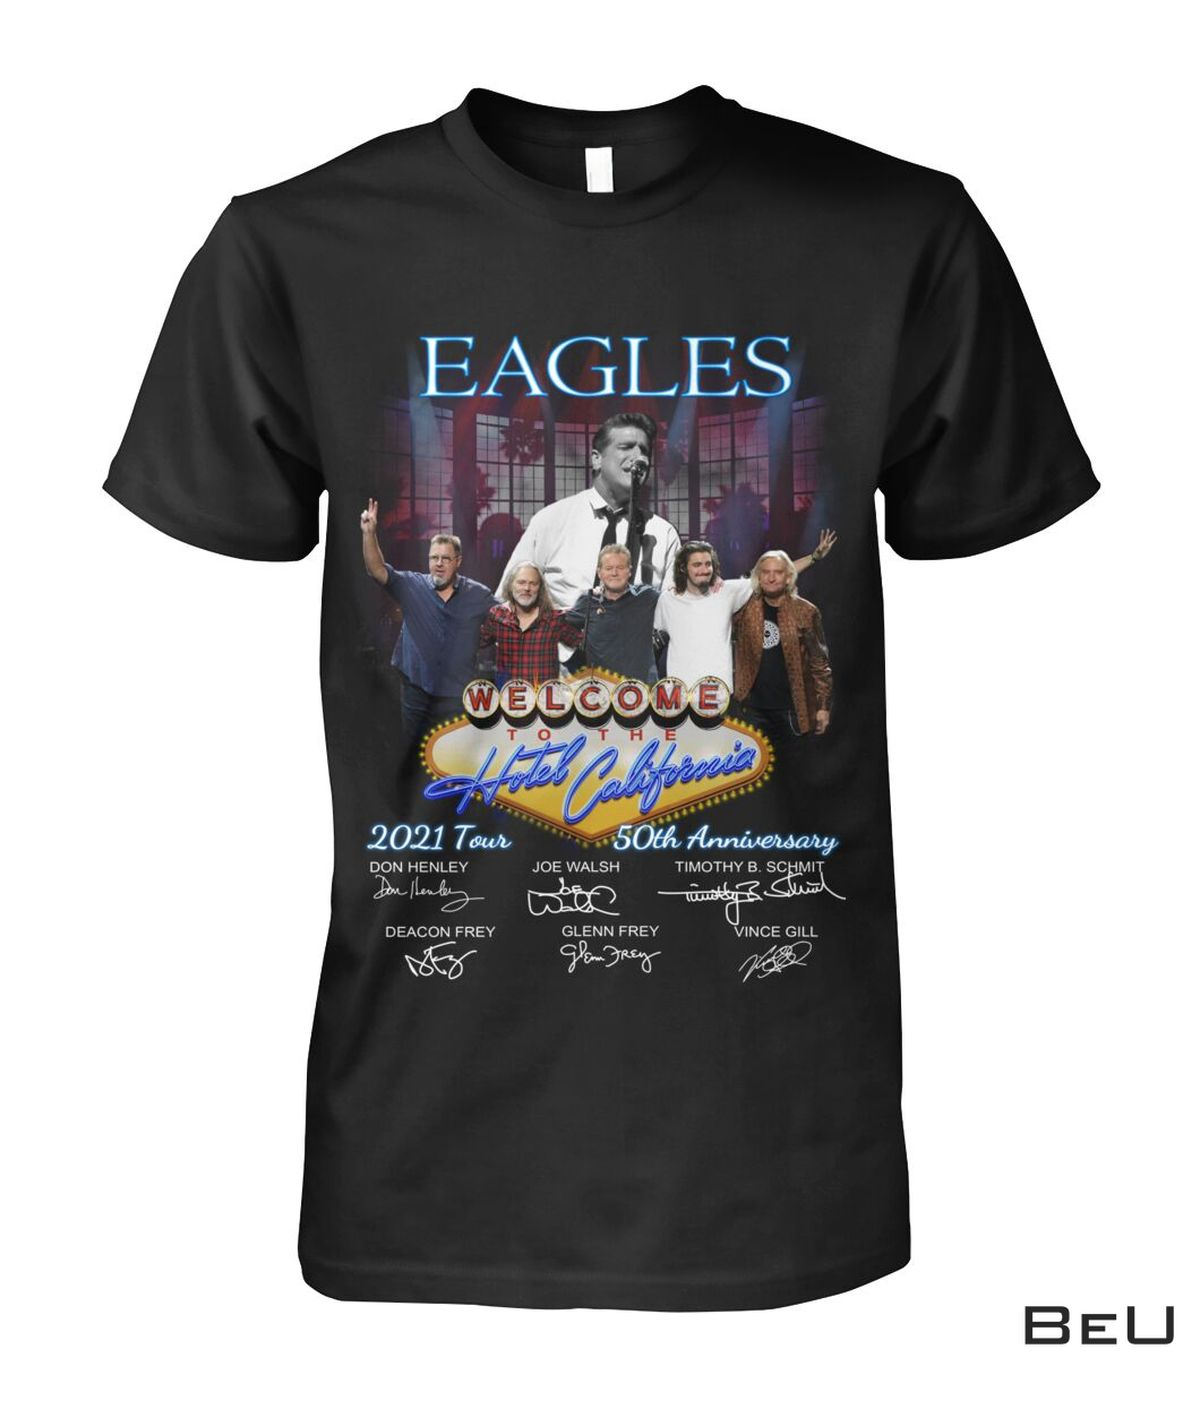 Hot Eagles Welcome To The Hotel California 2021 50th Anniversary Shirt, hoodie, tank top